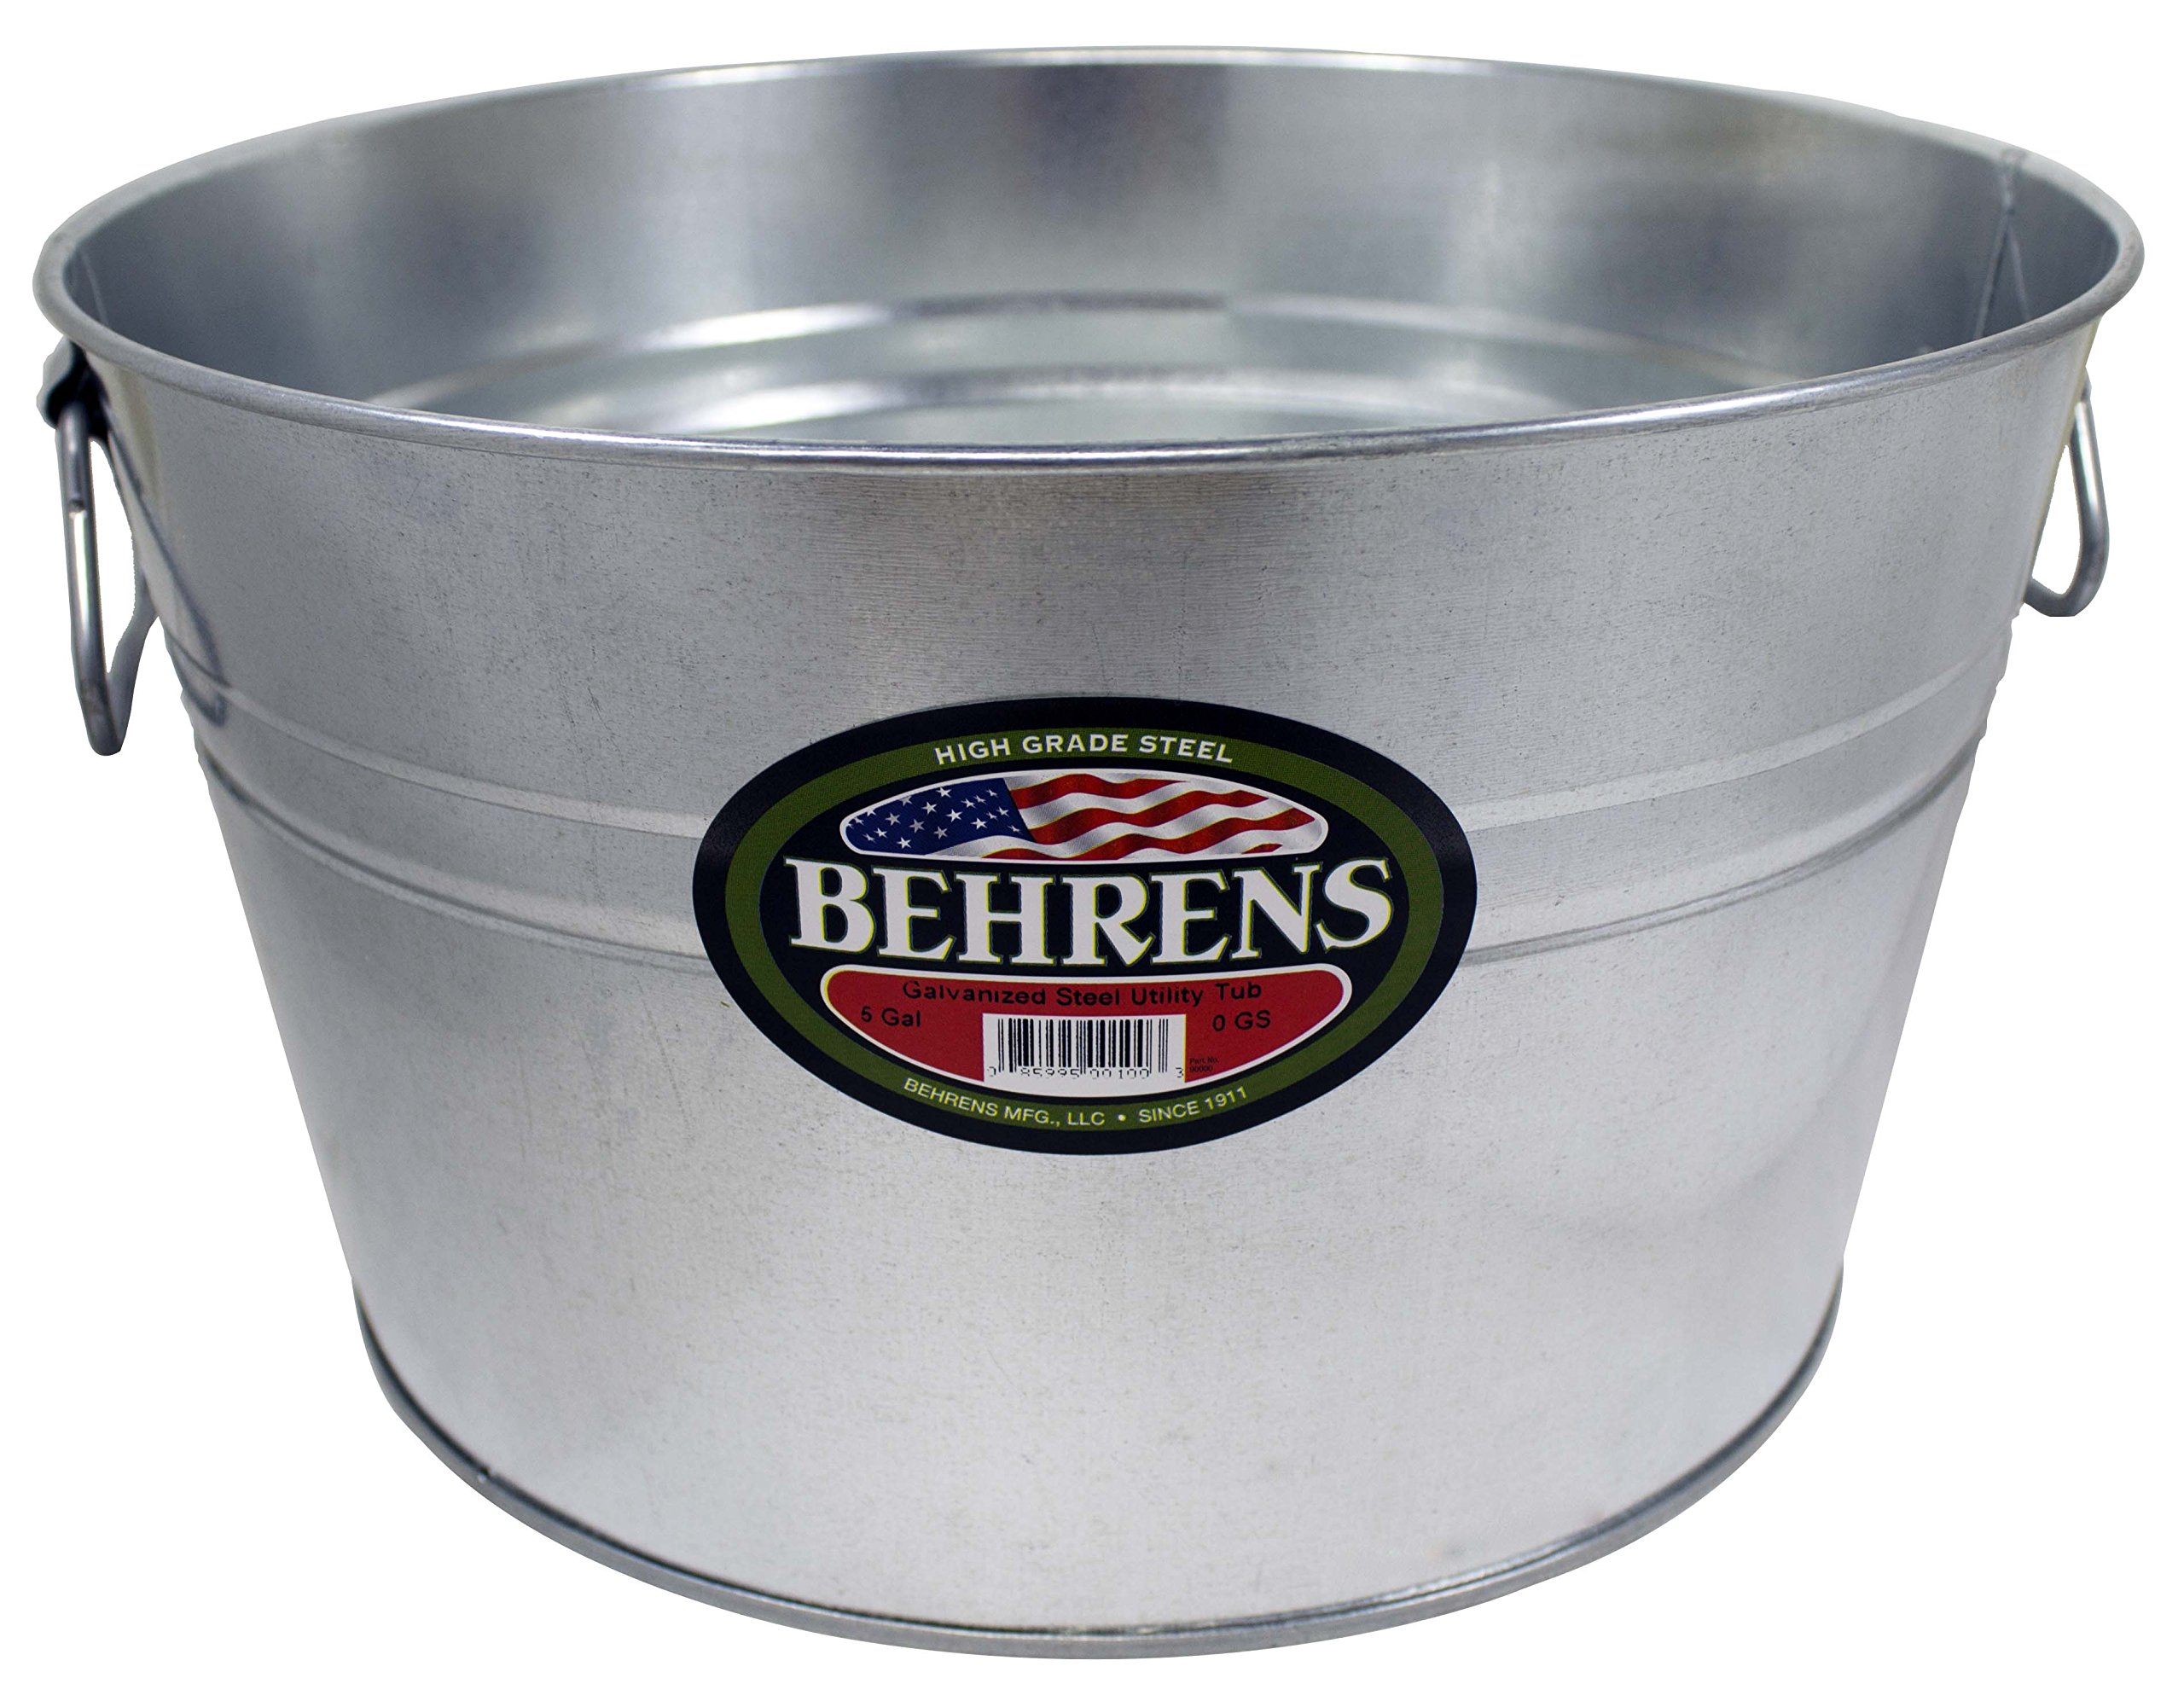 Behrens 0GS Galvanized Steel Round Tub, 5 gallon